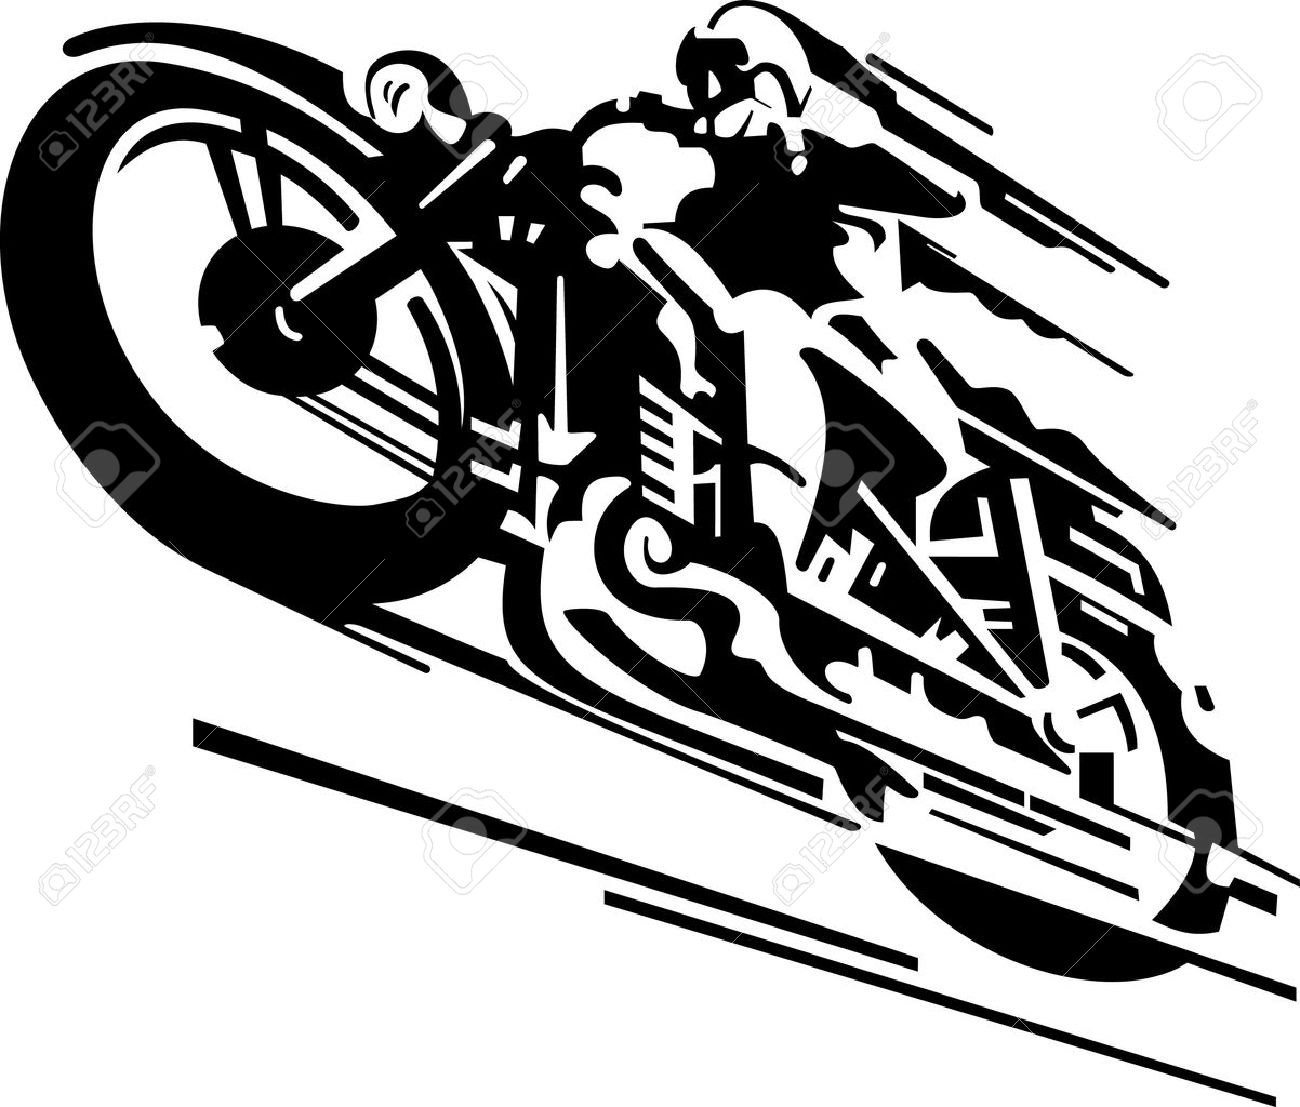 Moto clipart #13, Download drawings